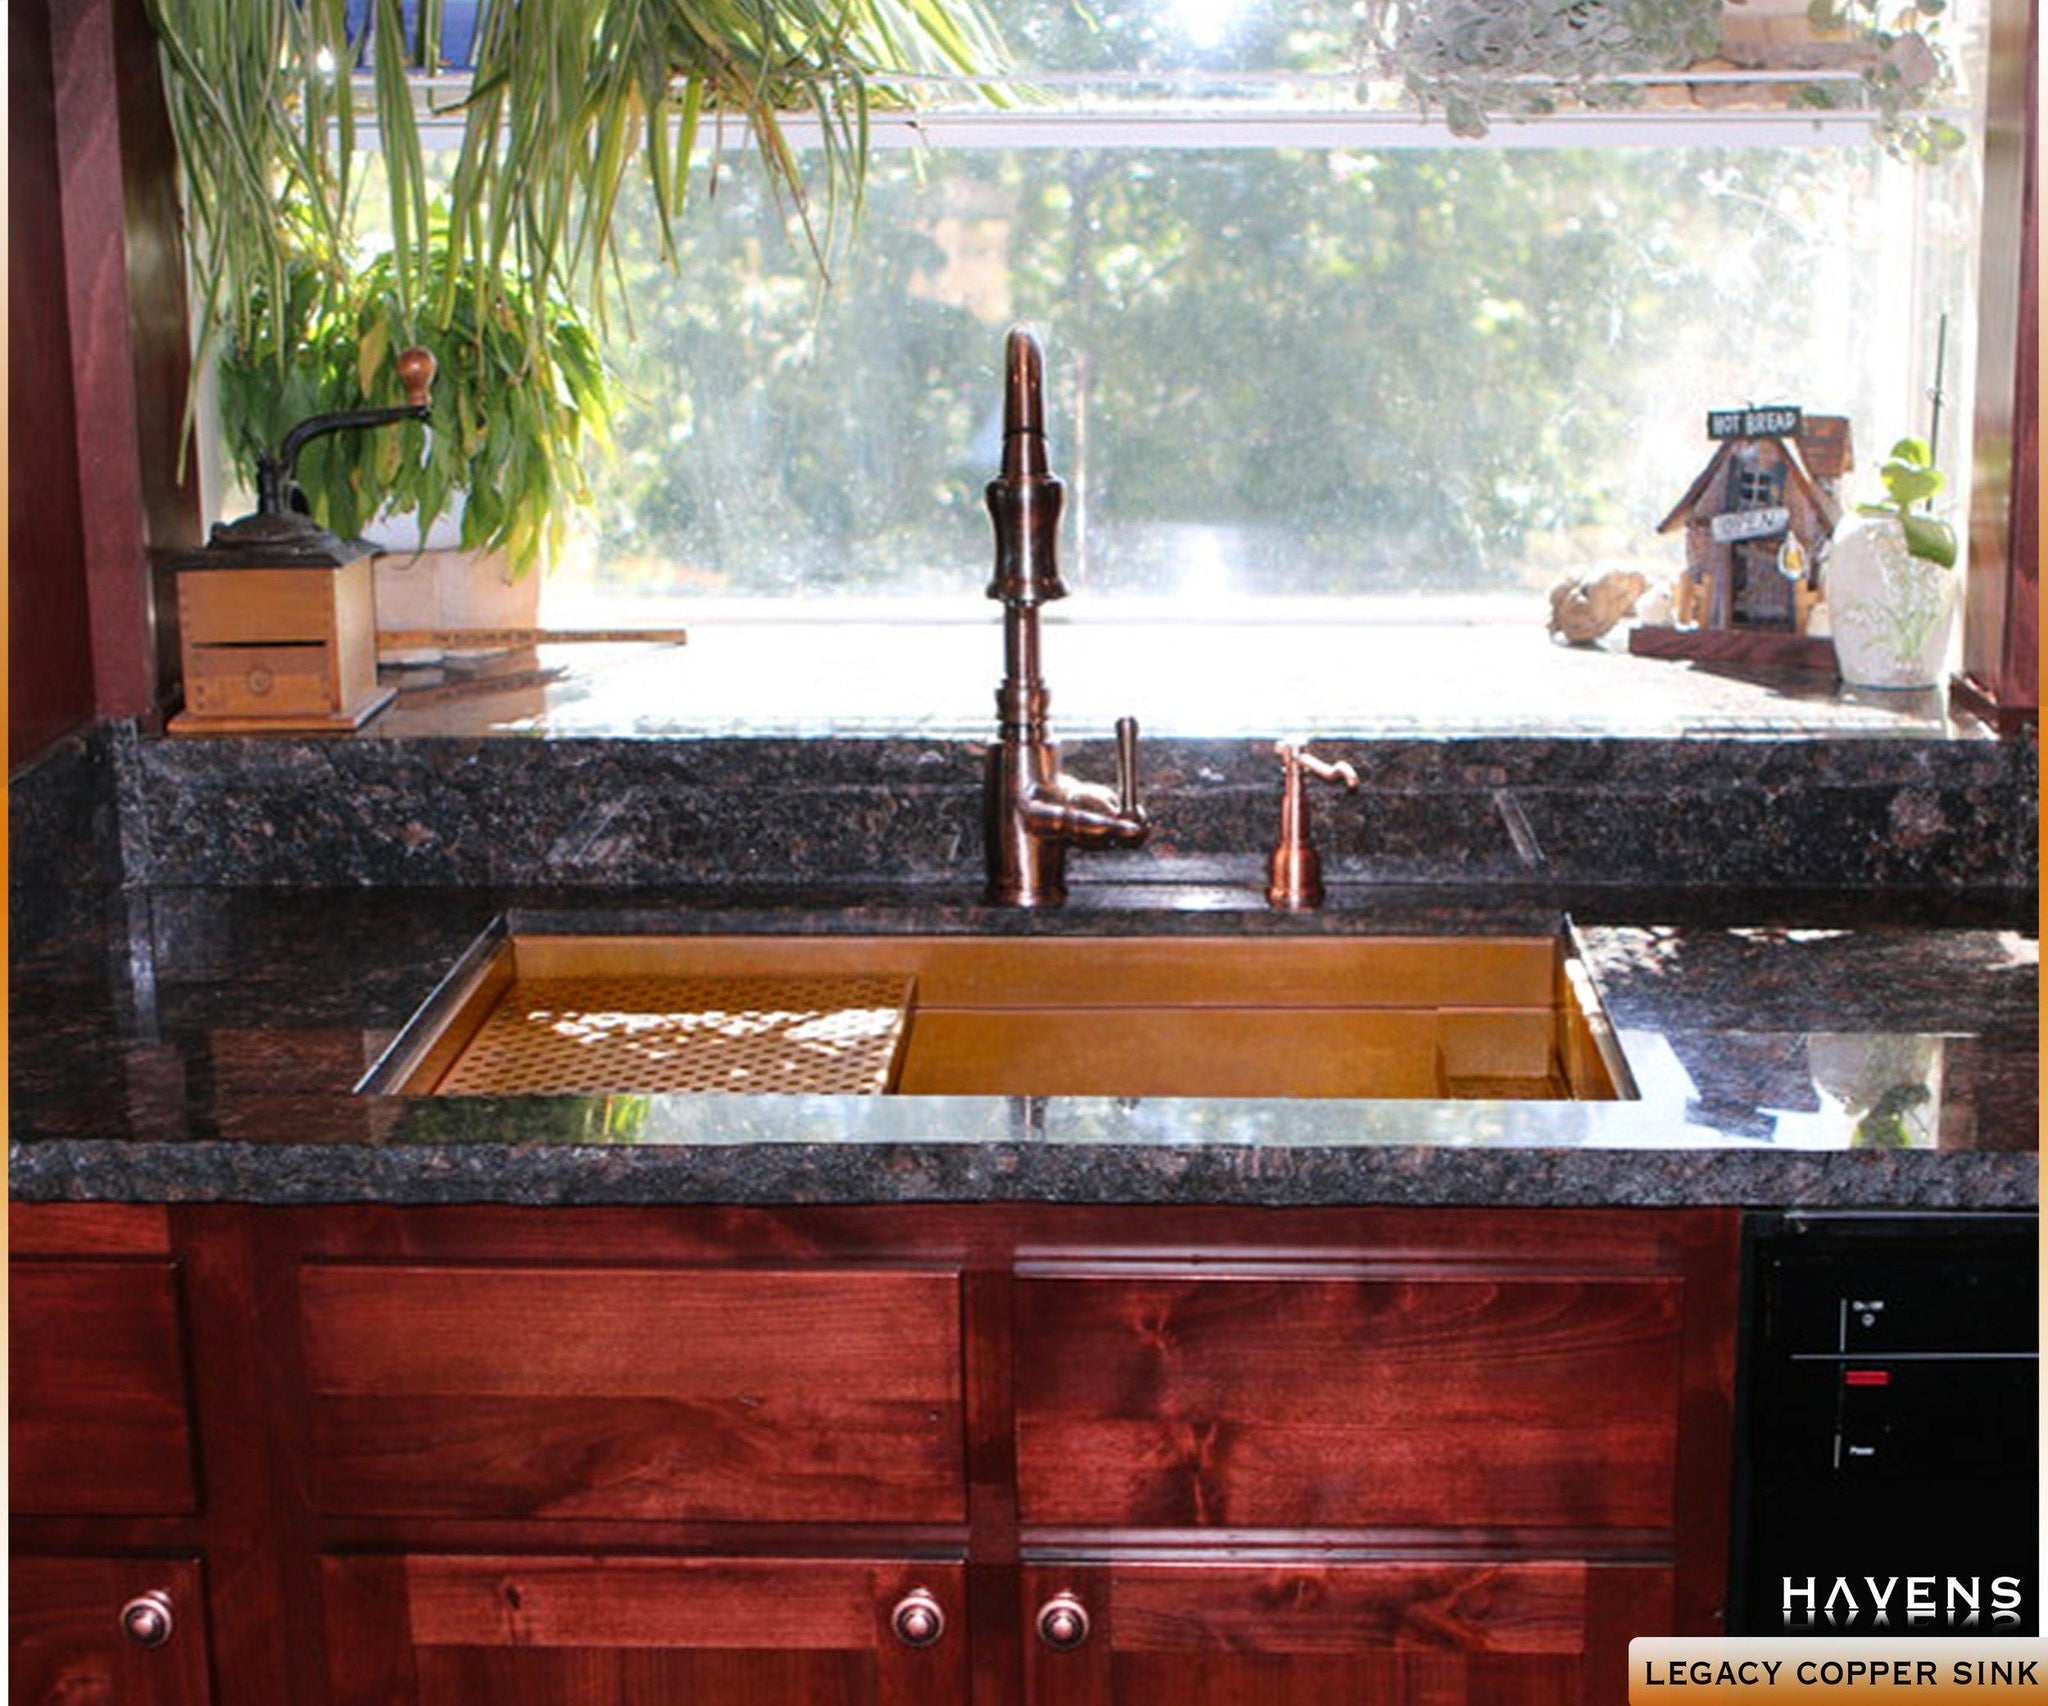 Undermount Legacy copper kitchen sink, USA handcrafted by Havens.